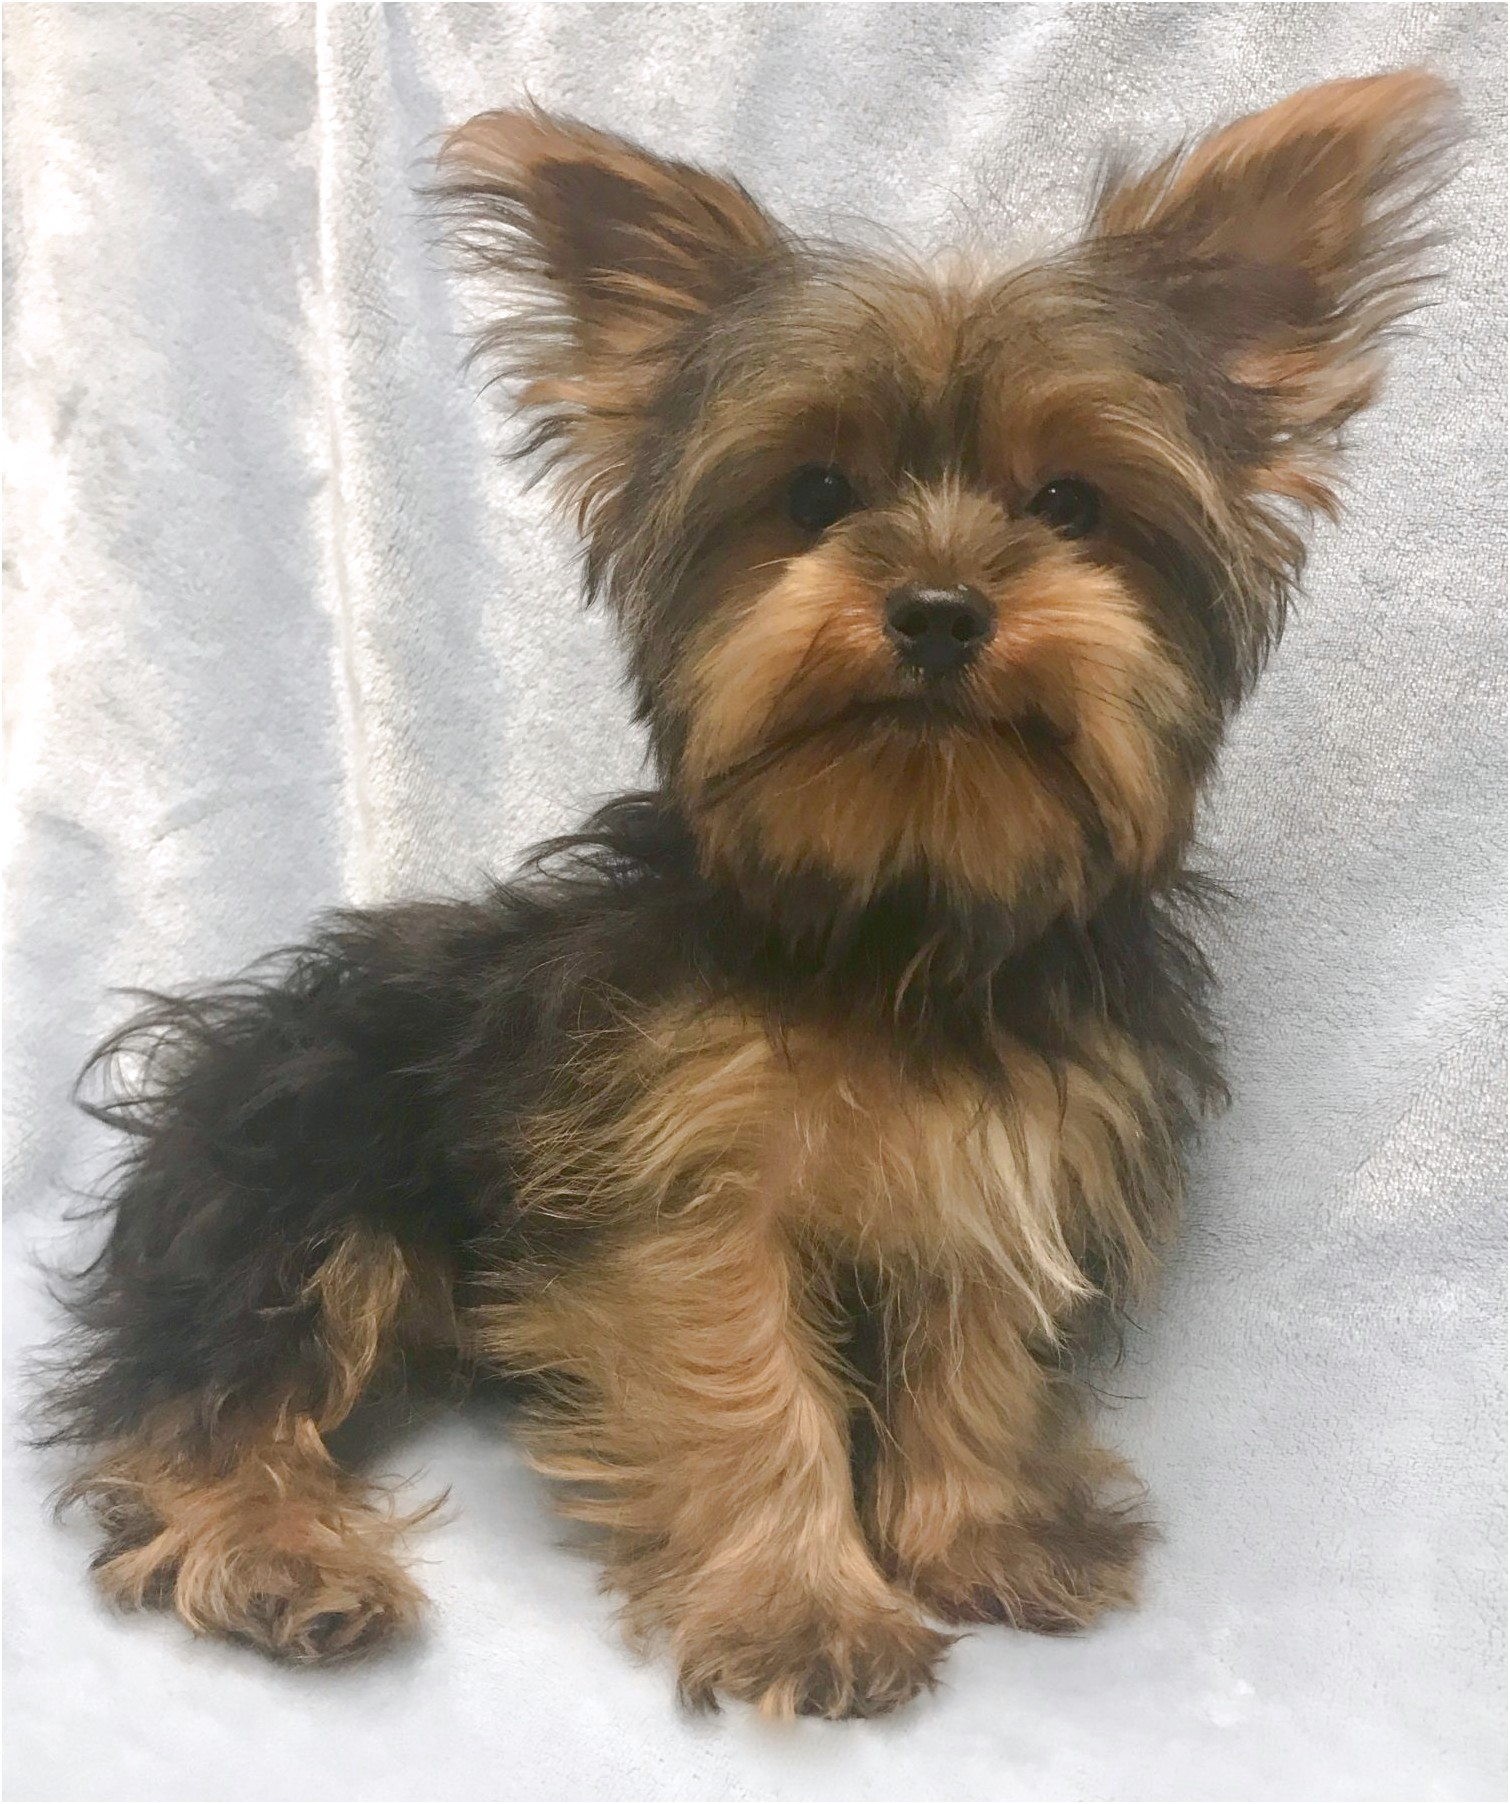 yorkshire terrier puppy pics